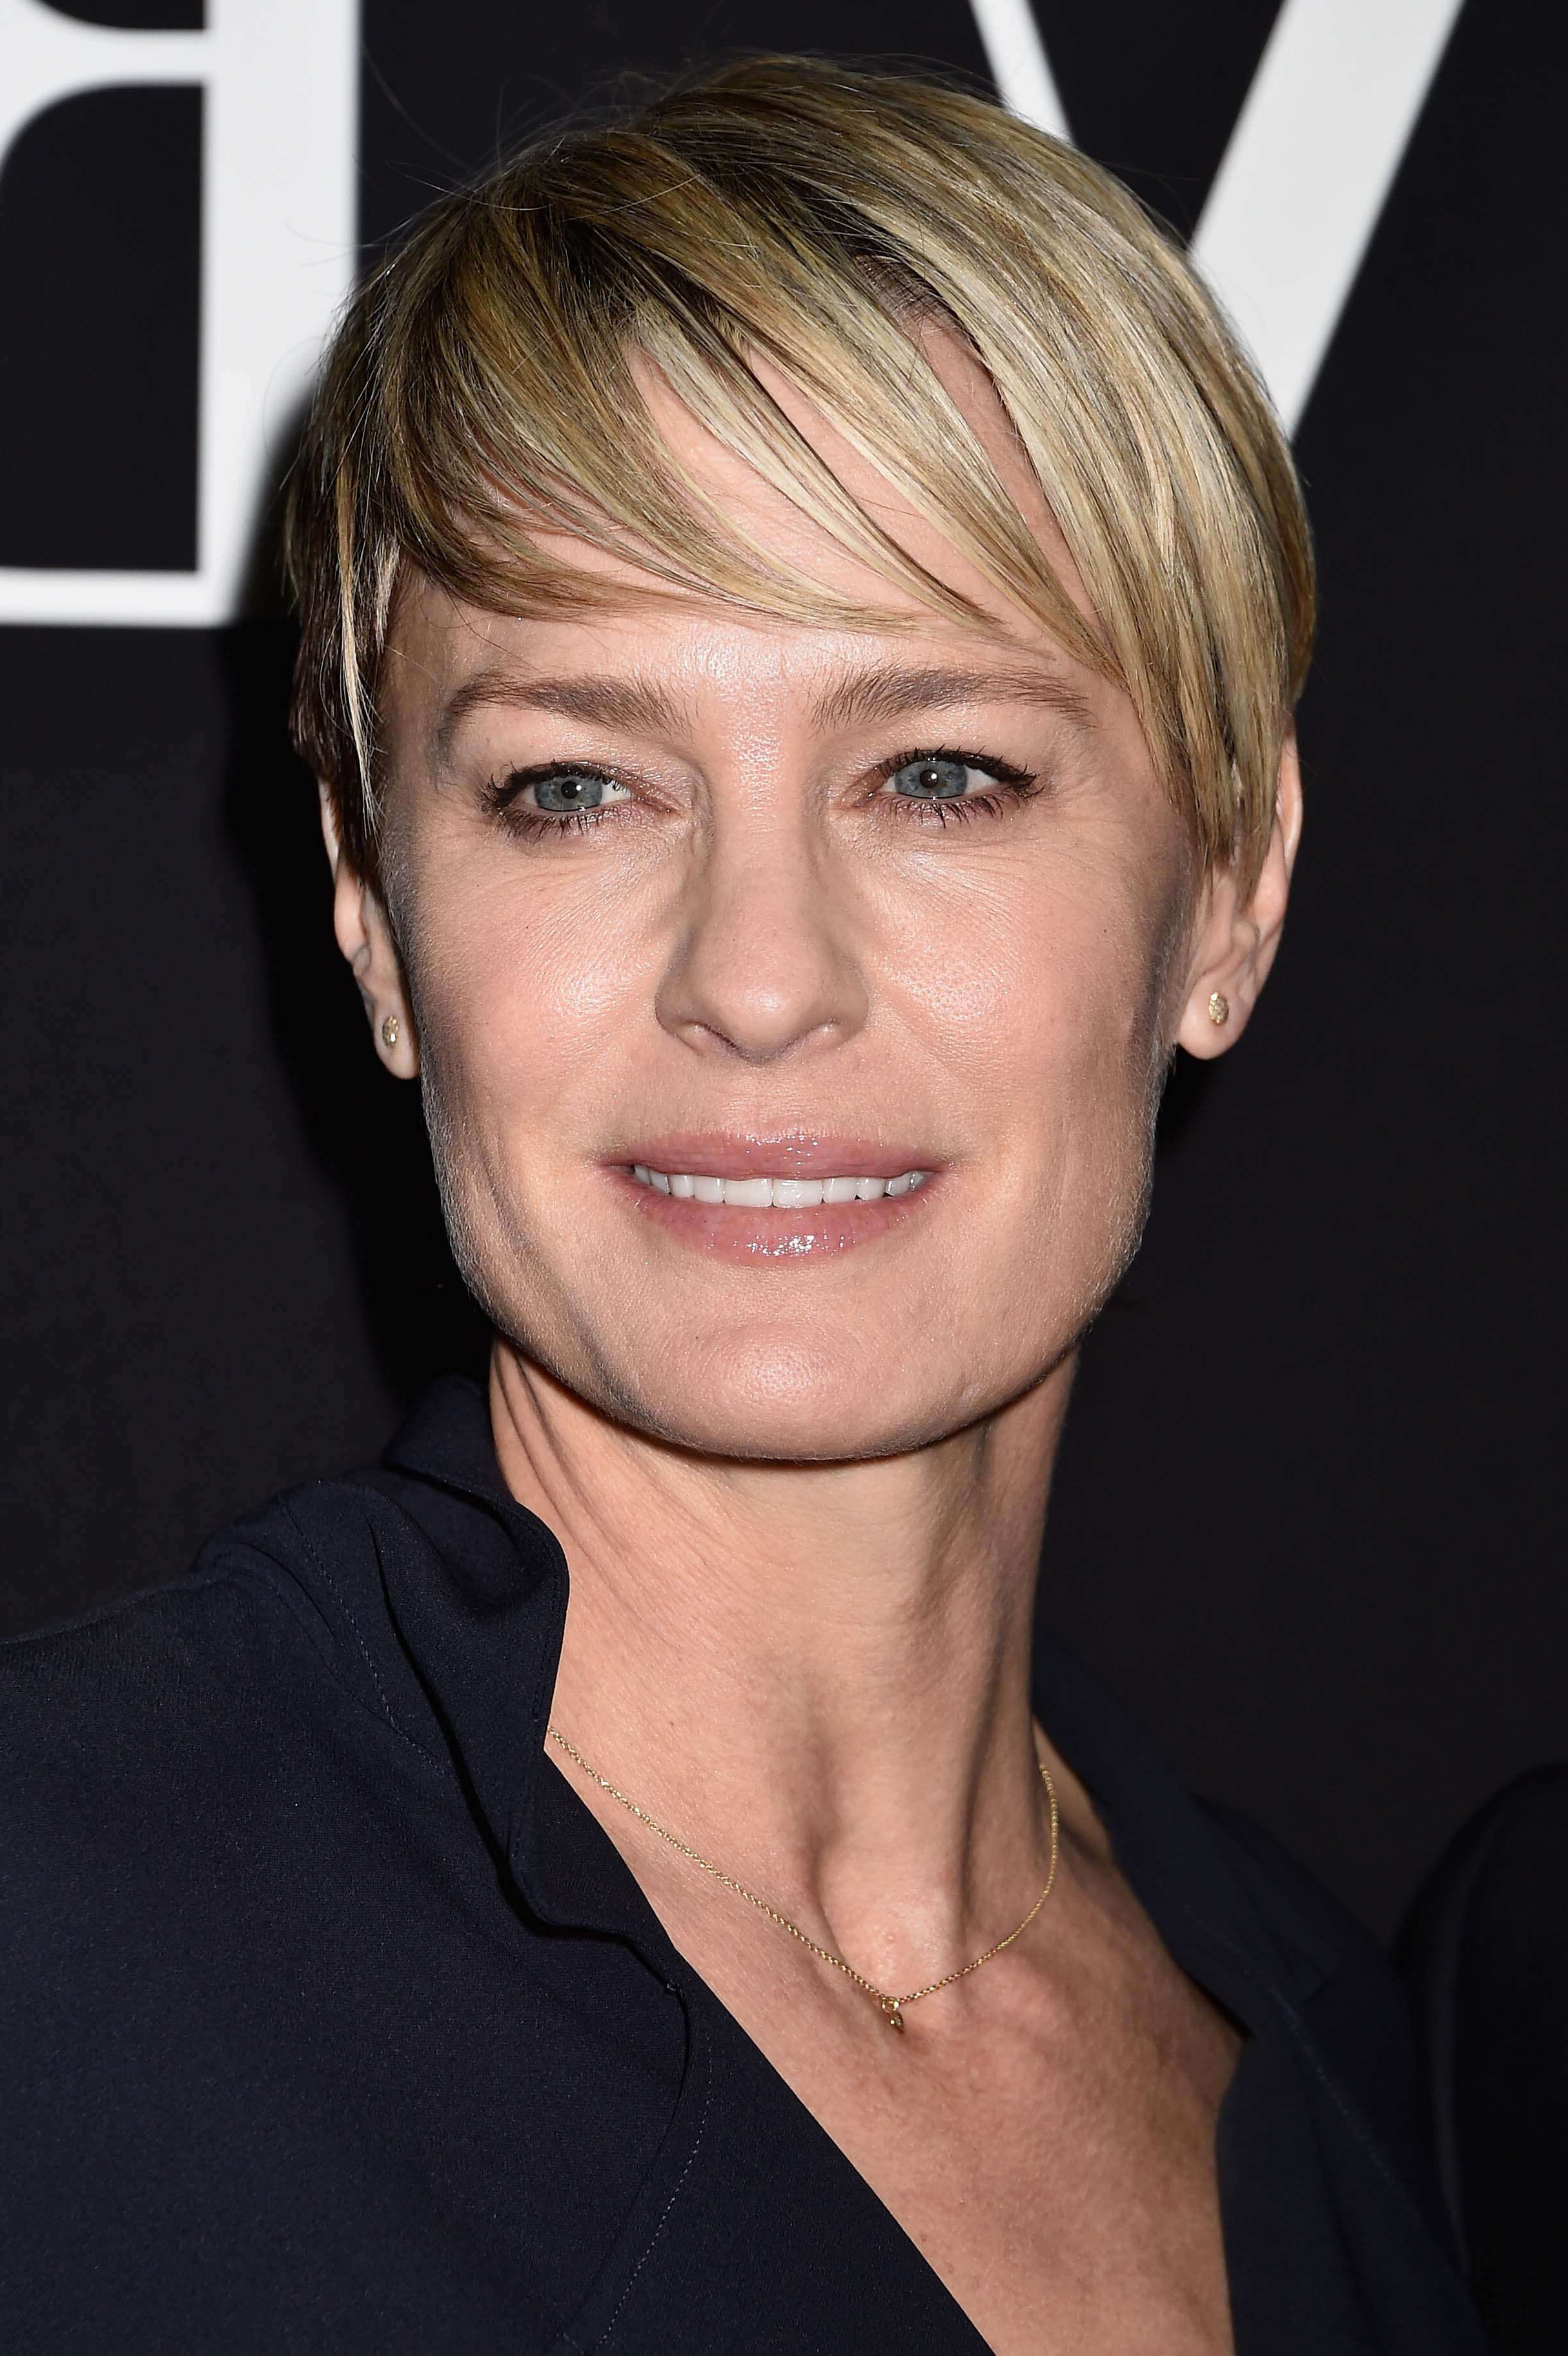 5 Flattering Short Hairstyles For Square Faces You Need To See   All Inside Short Haircuts For A Square Face Shape (View 24 of 25)